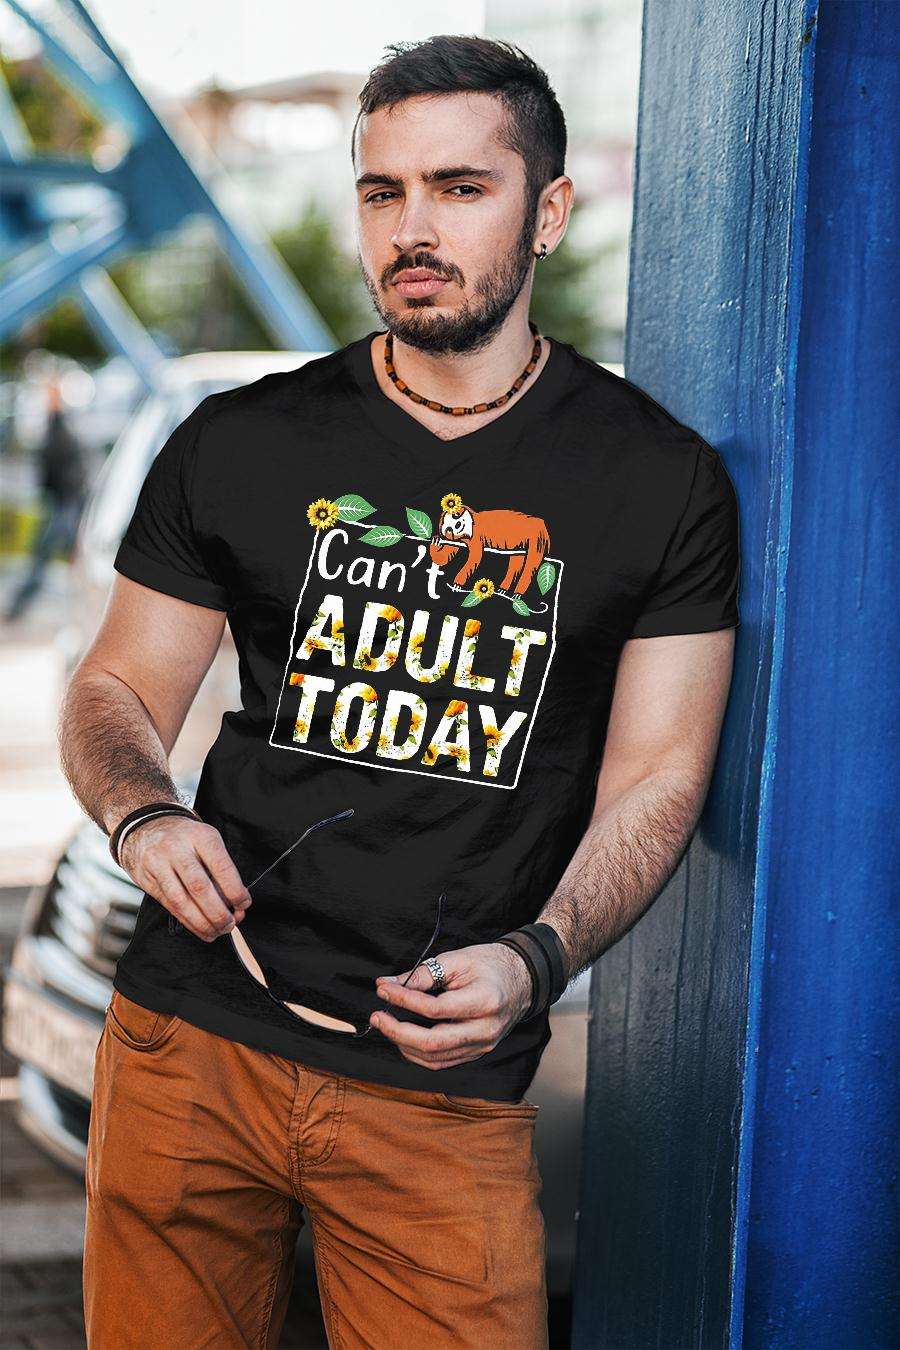 Gibbon Can't adult today shirt unisex